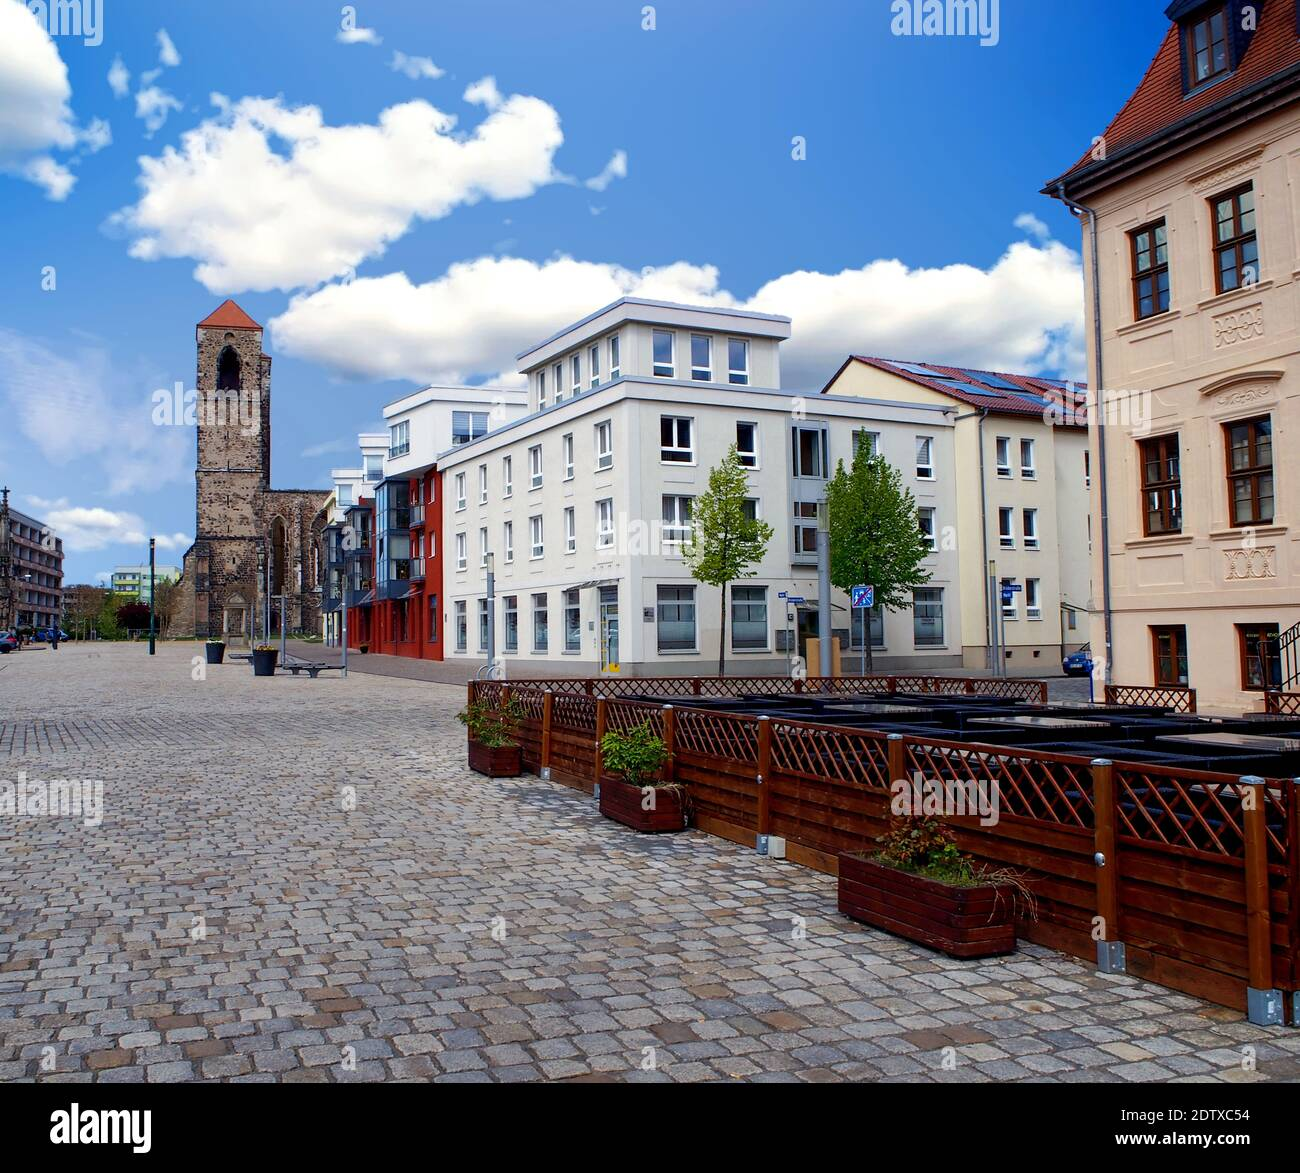 Market square and the St. Nicolai Church in Zerbst - Saxony - Anhalt, Germany Stock Photo